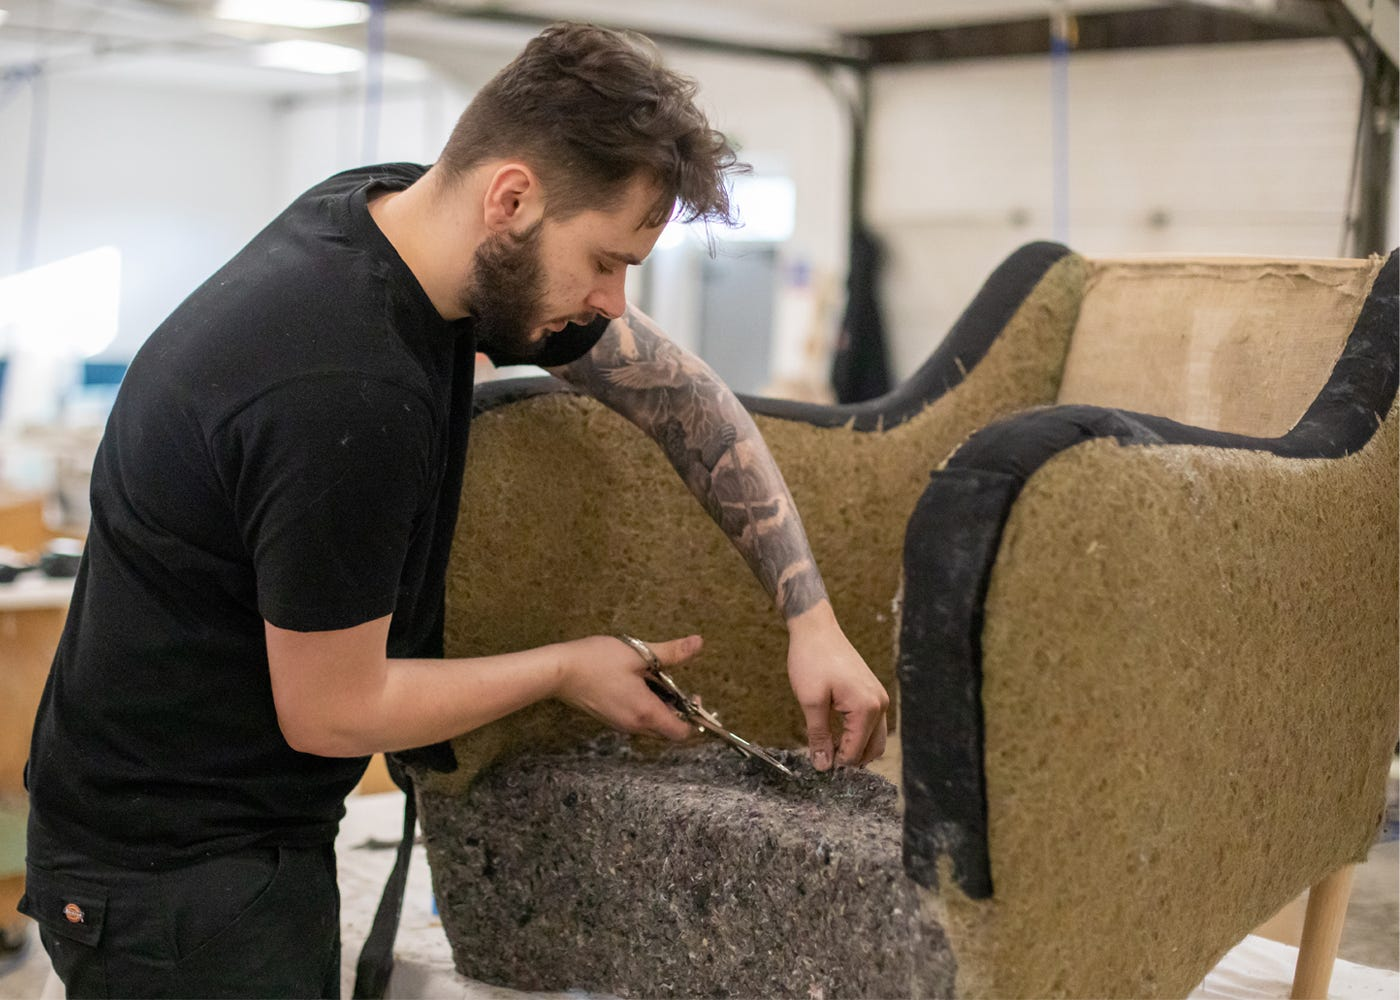 Only expert upholsterers are trusted to create this iconic piece